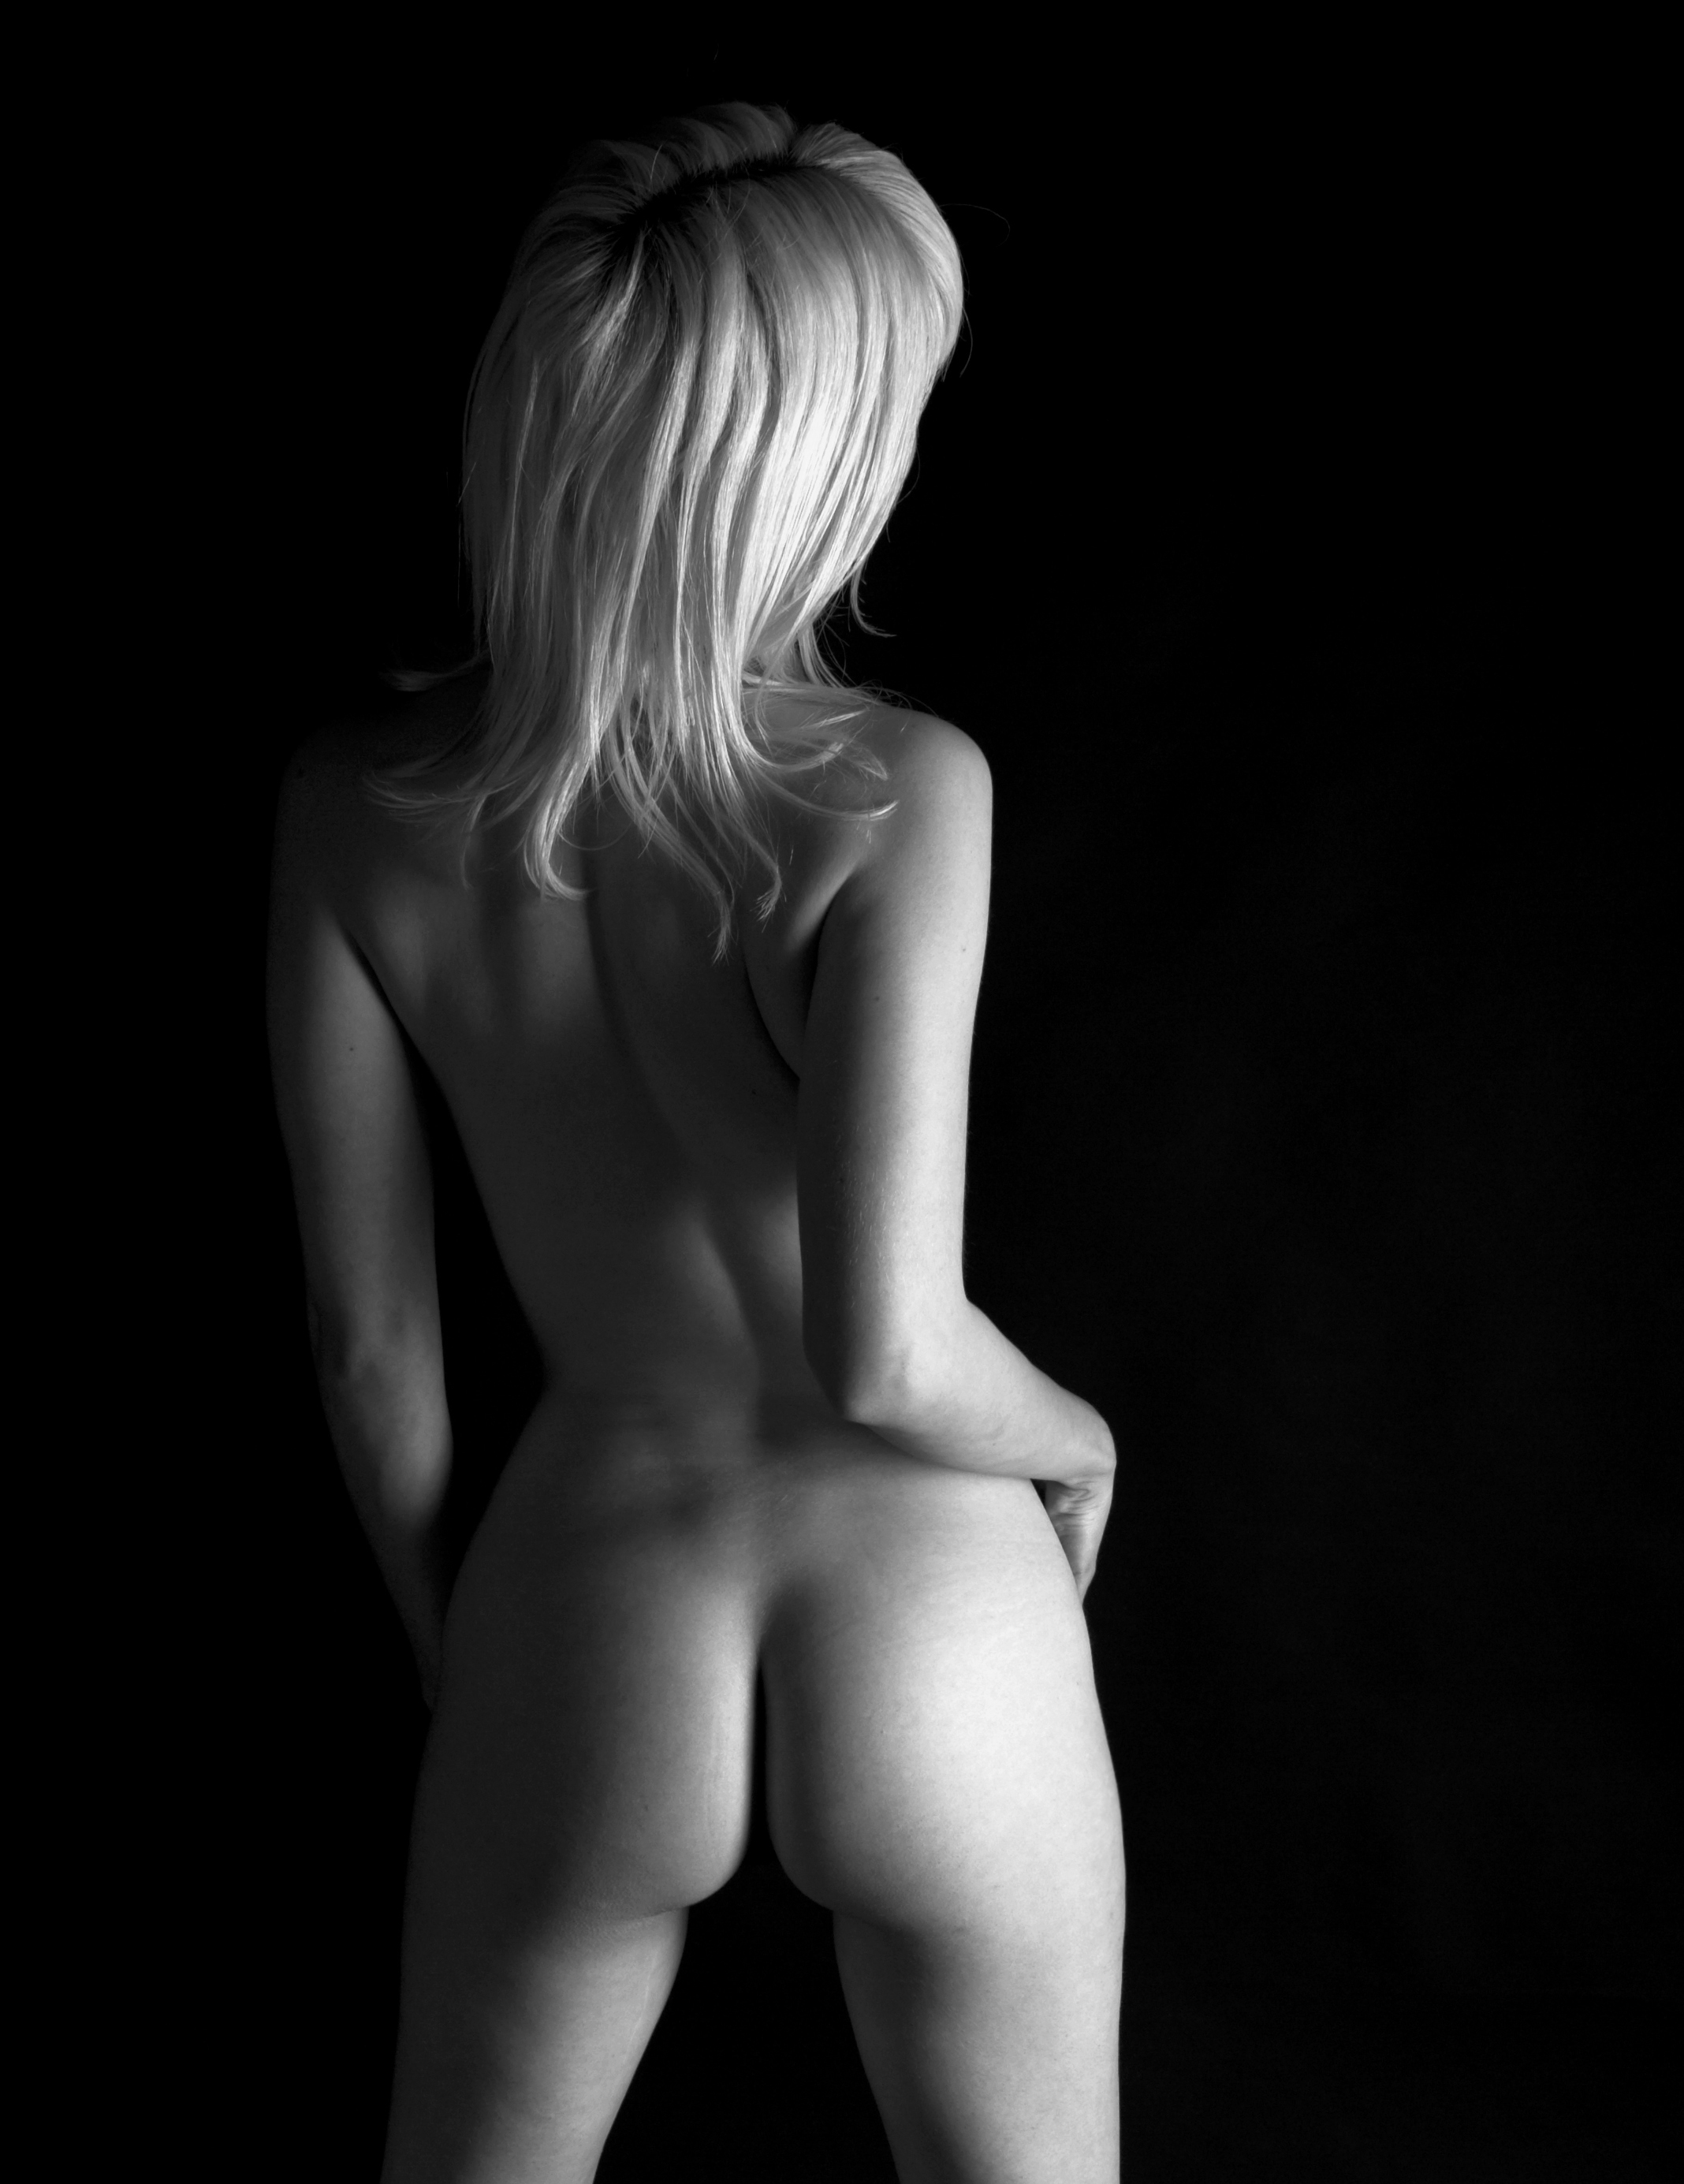 Girls Naked Back - Tumblr